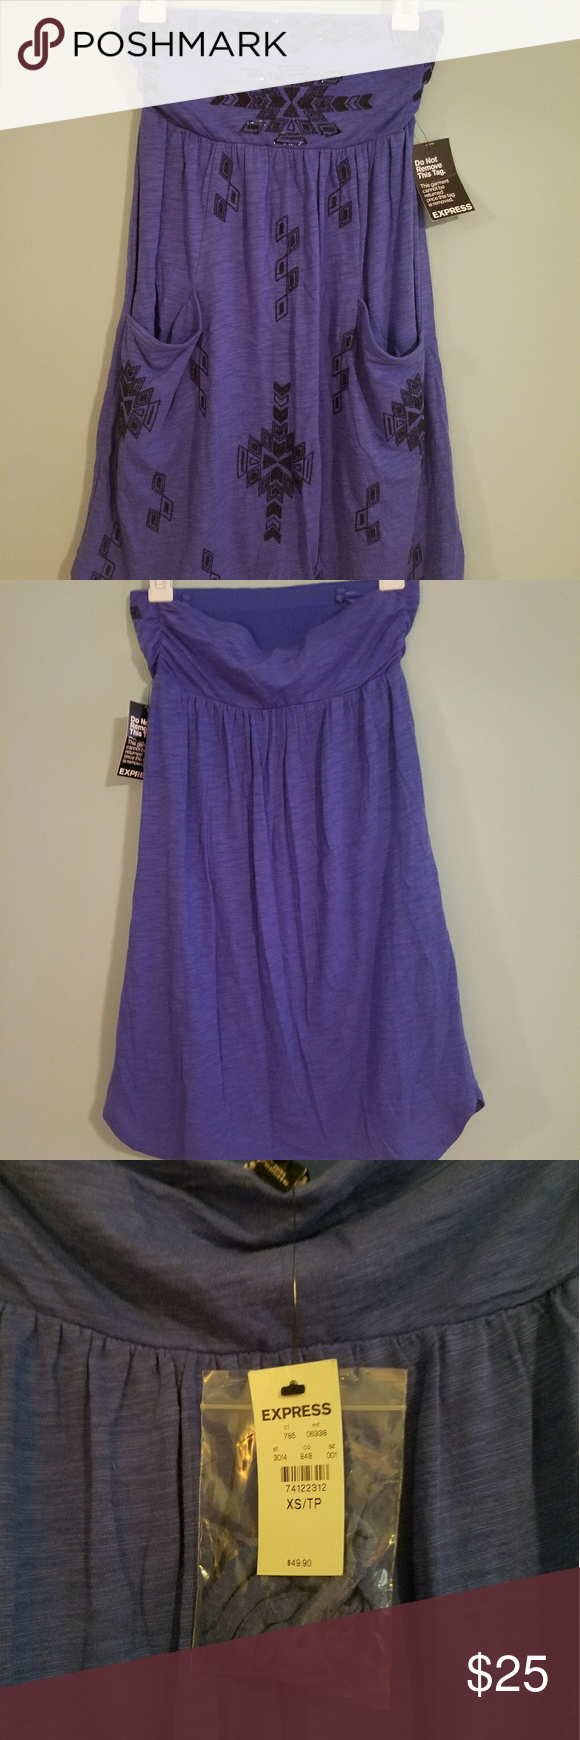 Express strapless dress   Strapless dress, Express dresses and Sequins